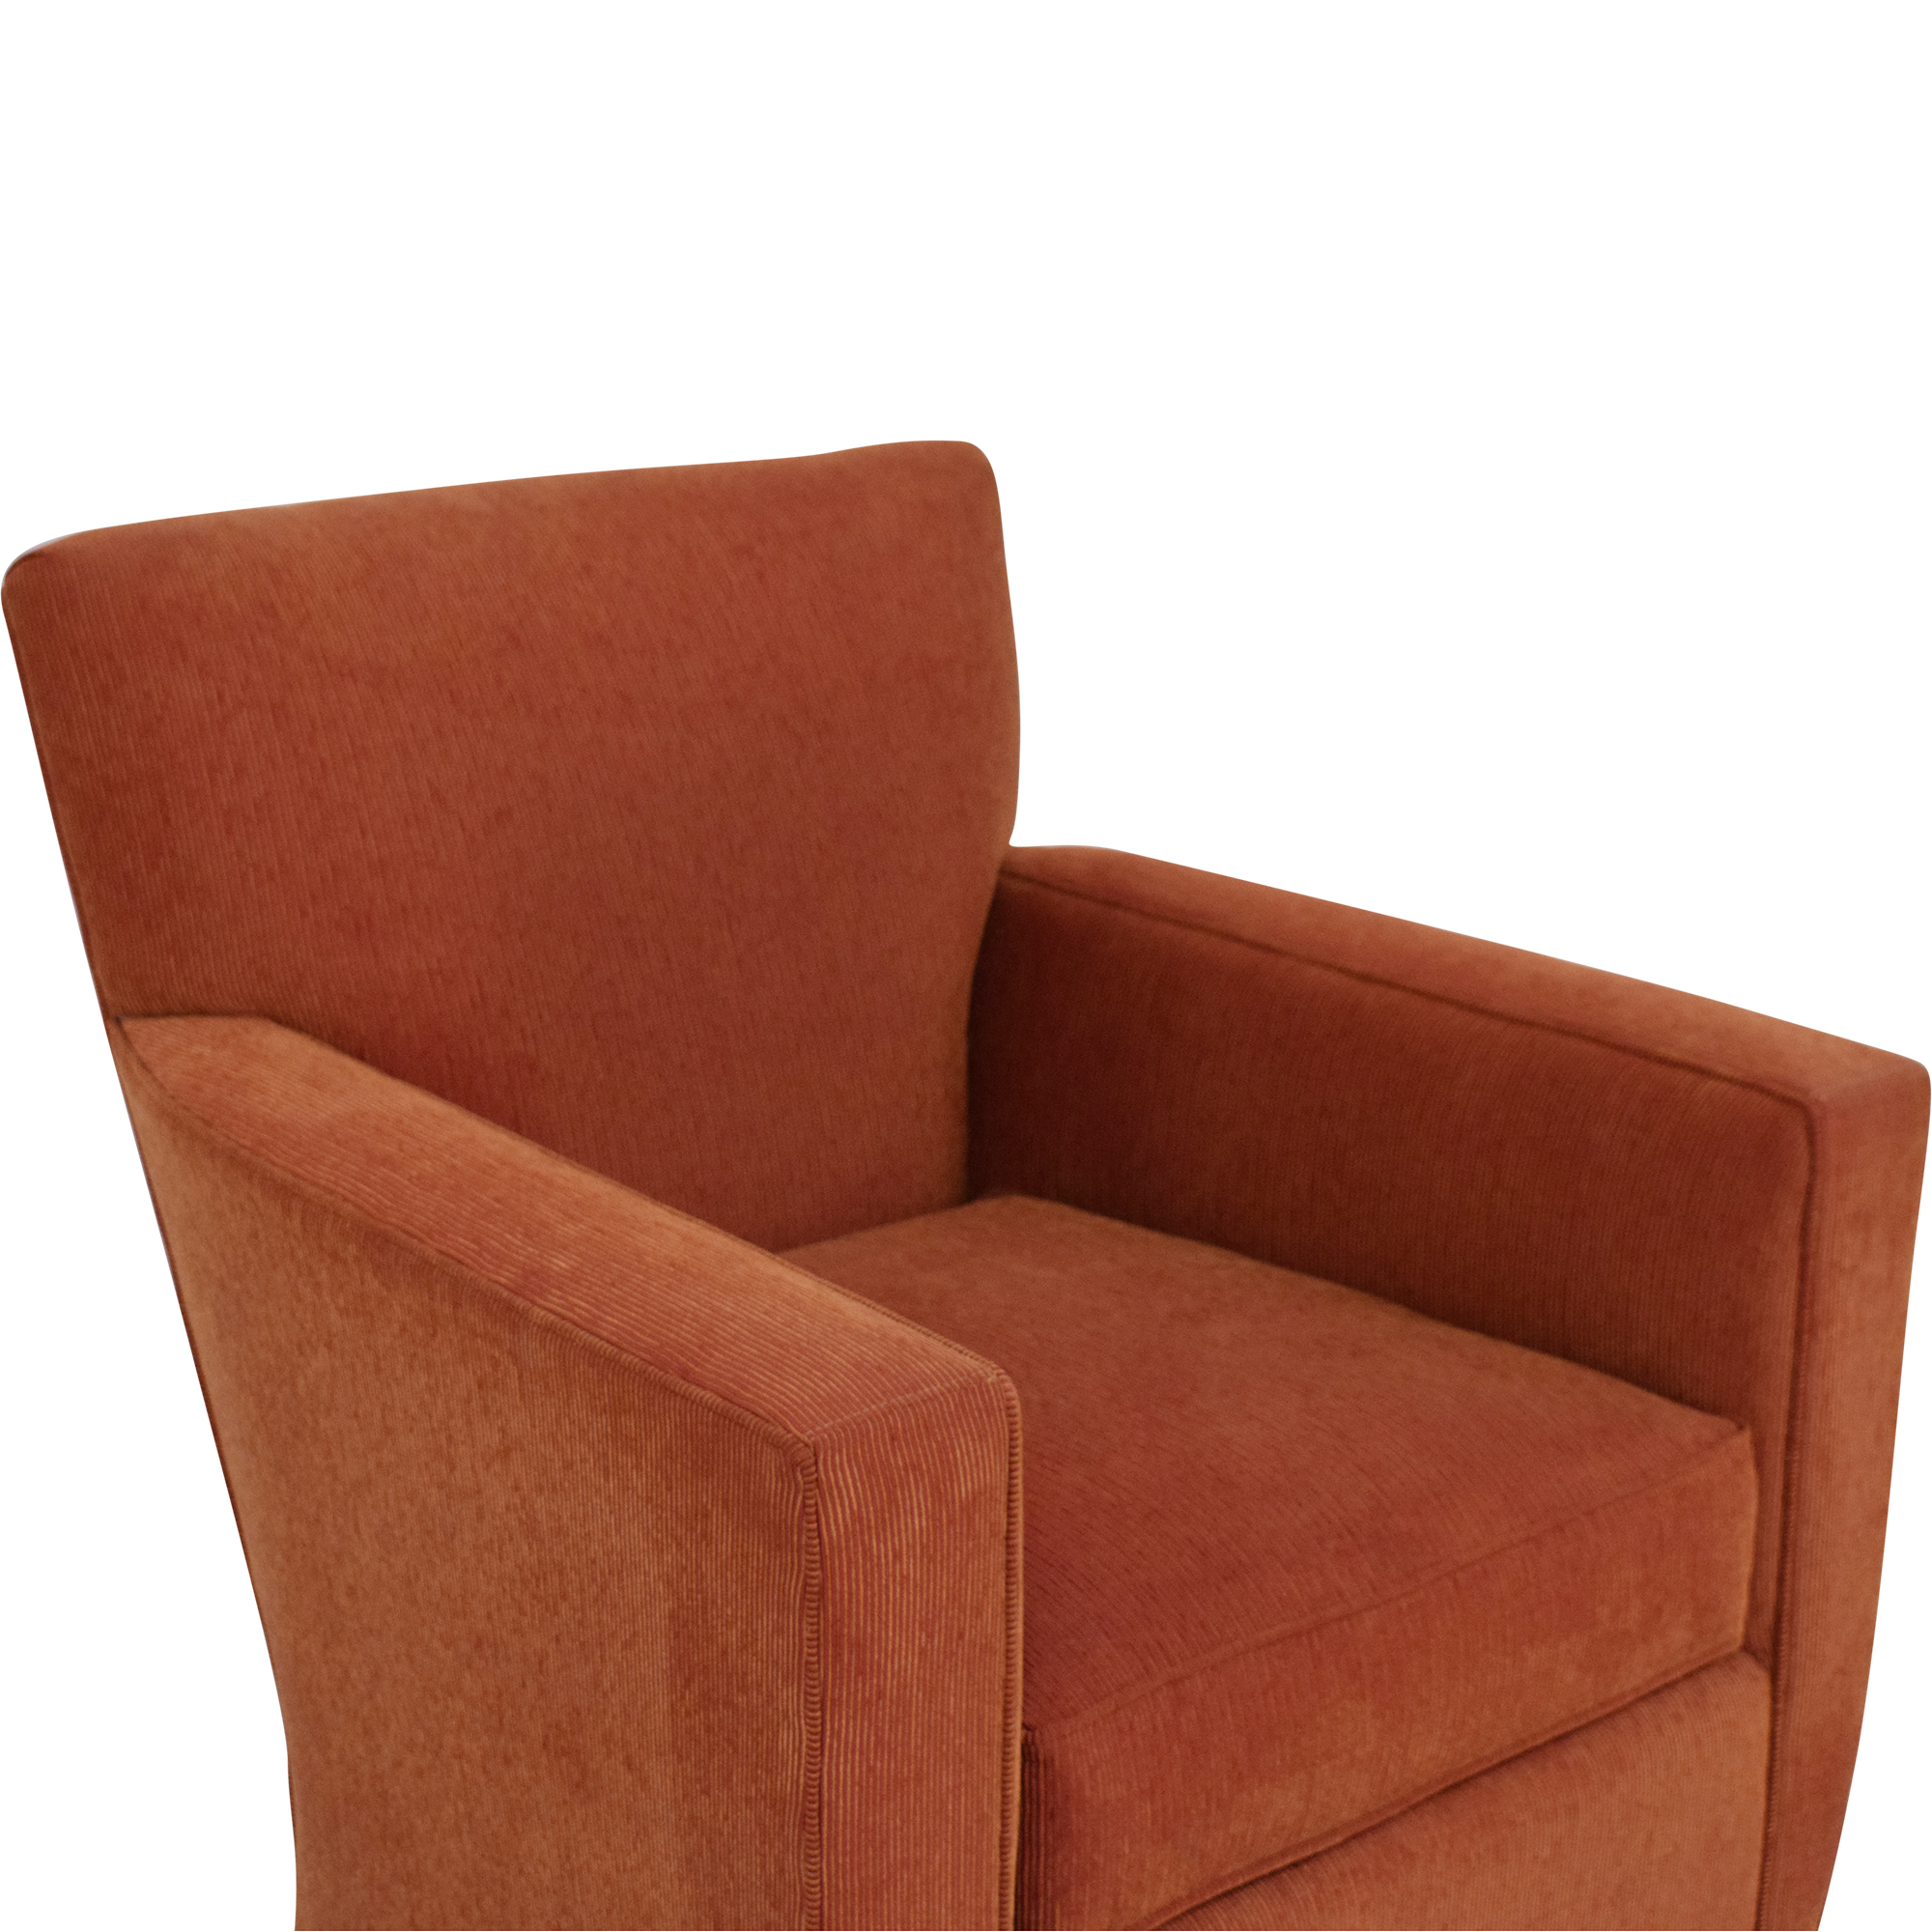 Crate & Barrel Crate & Barrel Accent Chair for sale